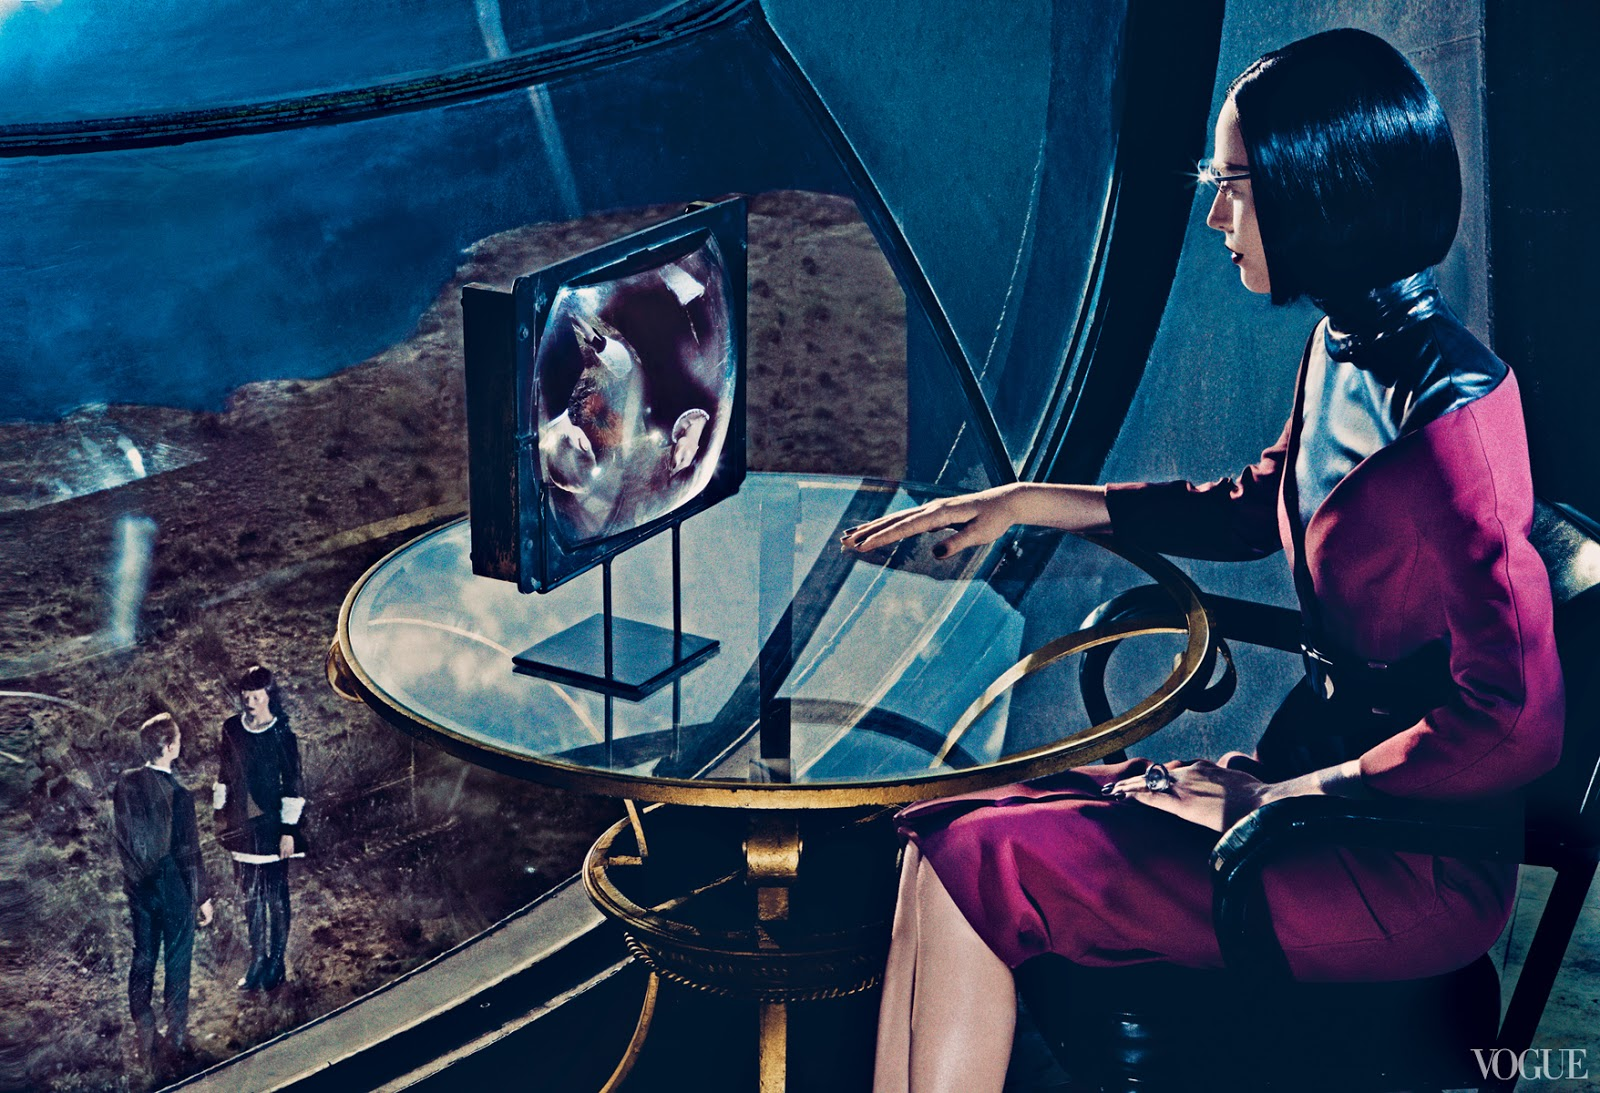 Doctor Ojiplático. The final Frontier. Steven Klein. Fashion Photography. Vogue, September 2013.